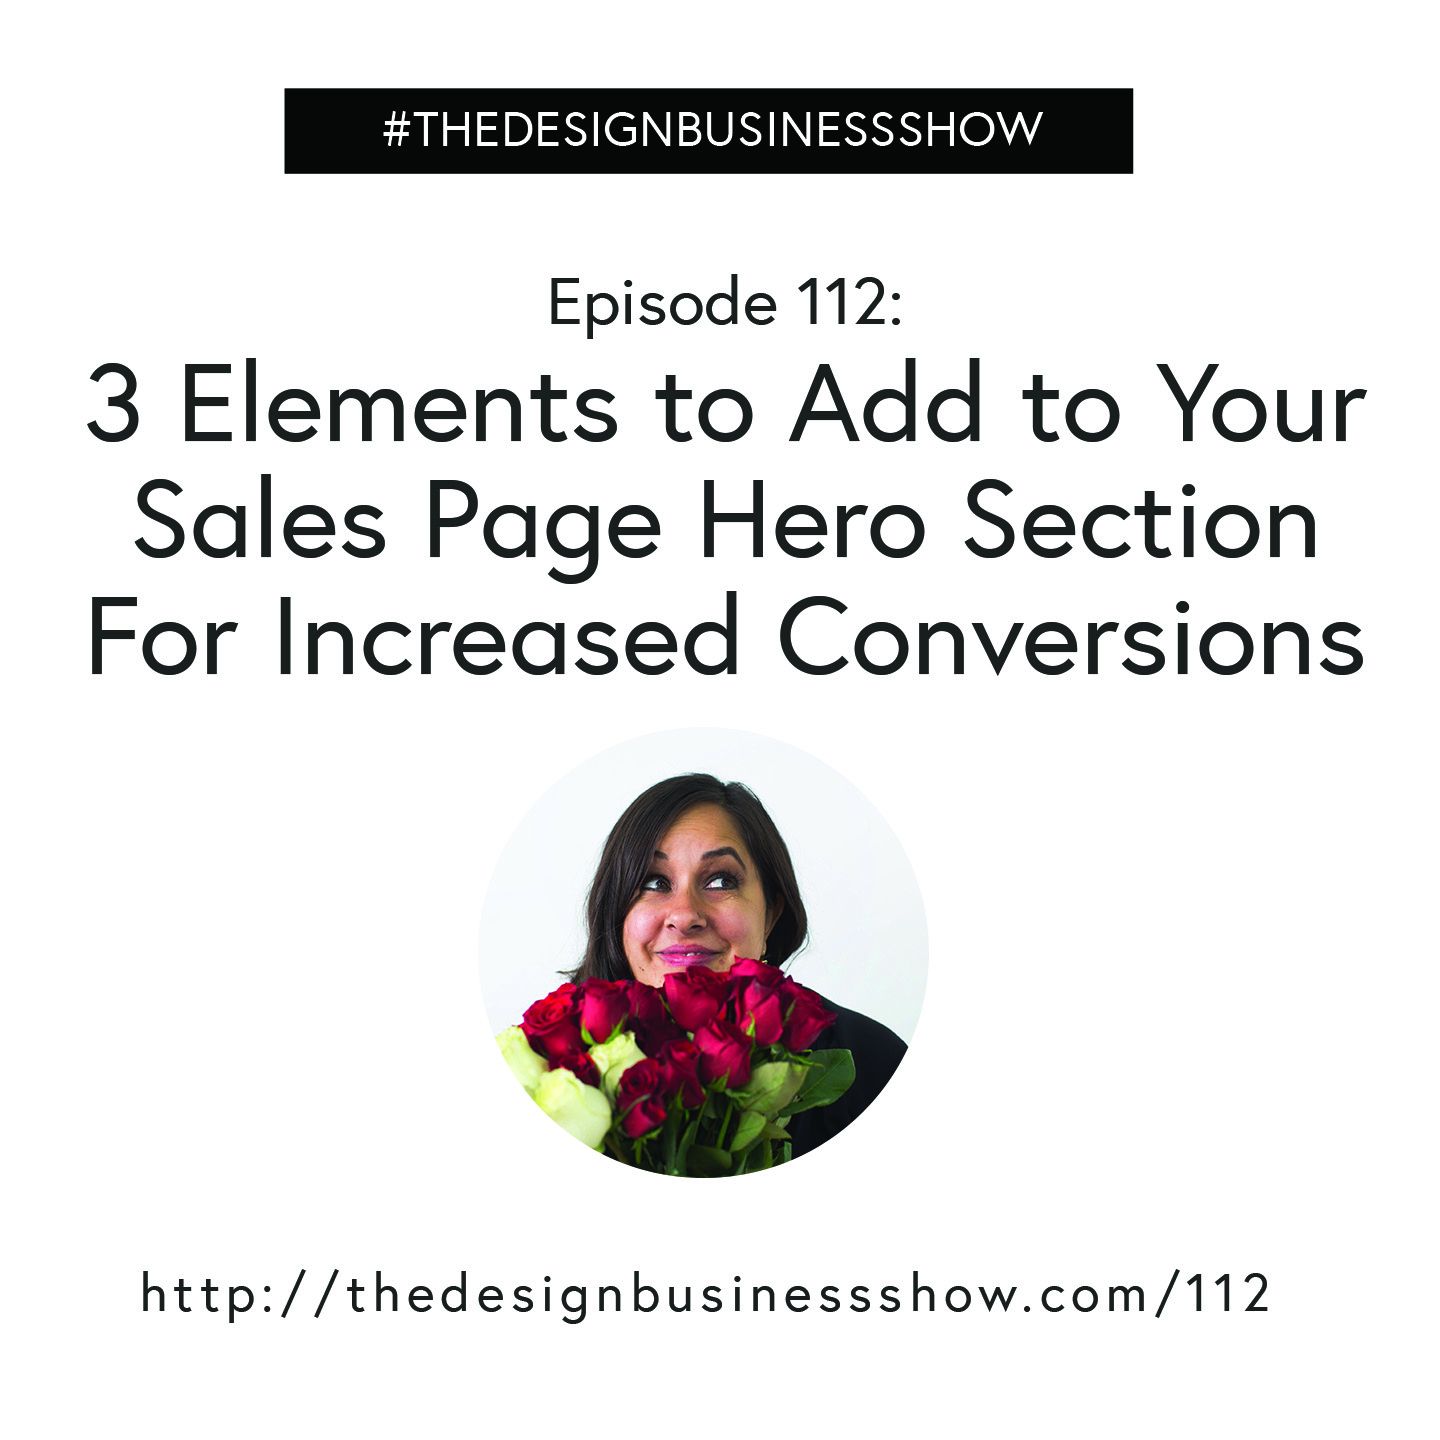 Learn about 3 design elements you can add to your sales page to help increase conversions.